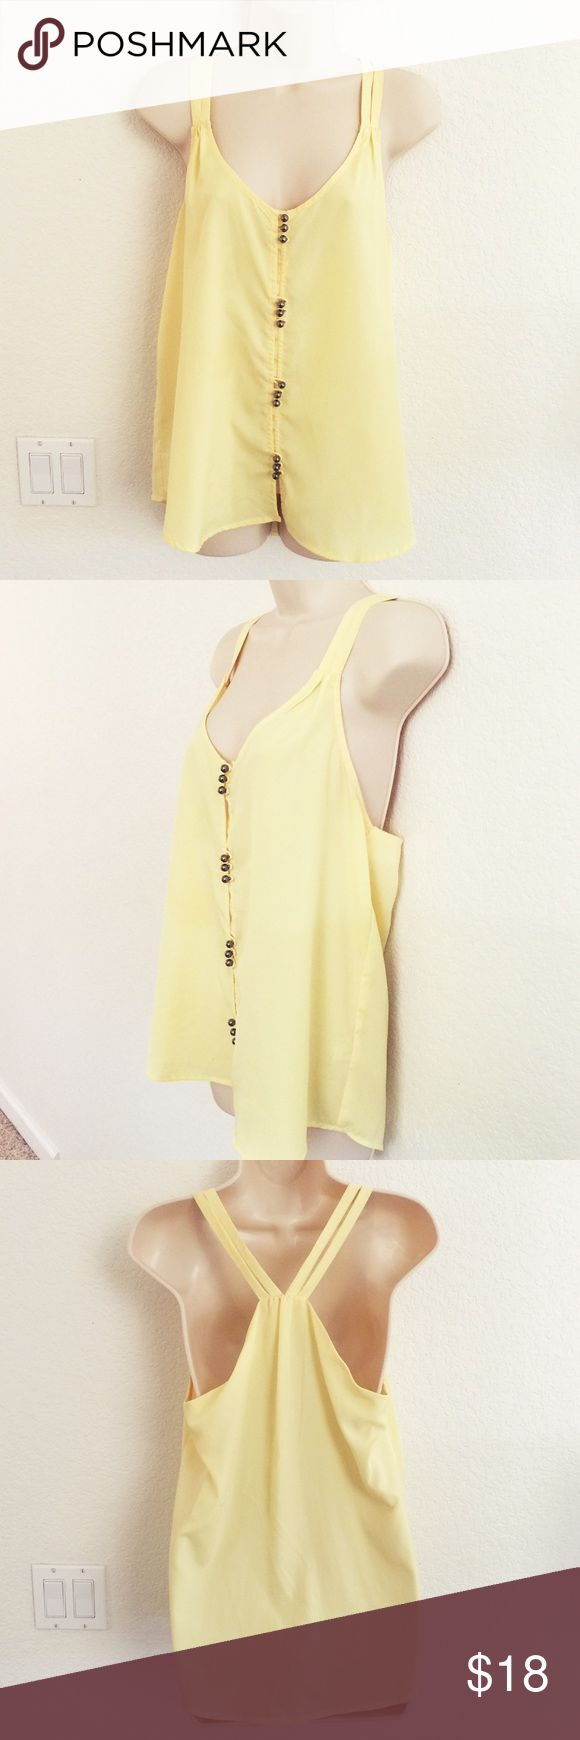 New Loose Tank NWOT, Loose fitted tank, Satin material, buttons are charcoal silver, light yellow color Zinga Tops